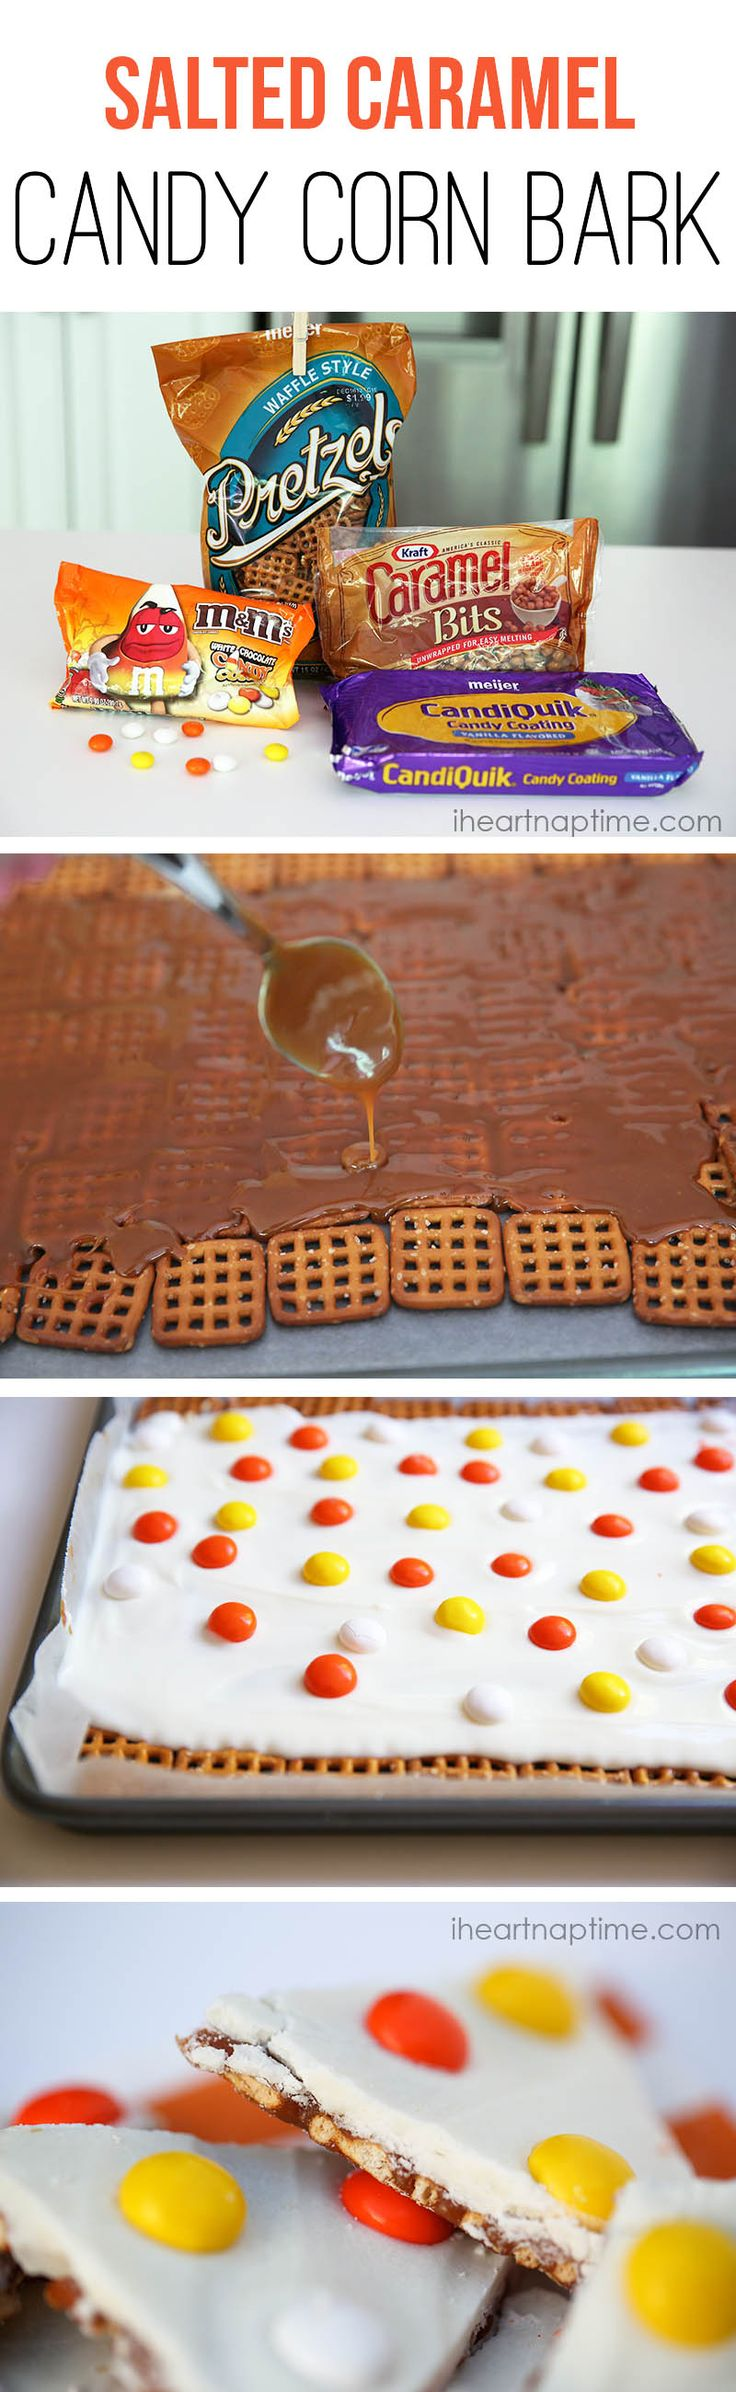 NO-BAKE salted caramel candy corn bark on iheartnaptime.com ...such an easy and delicious treat! #Halloween #recipes